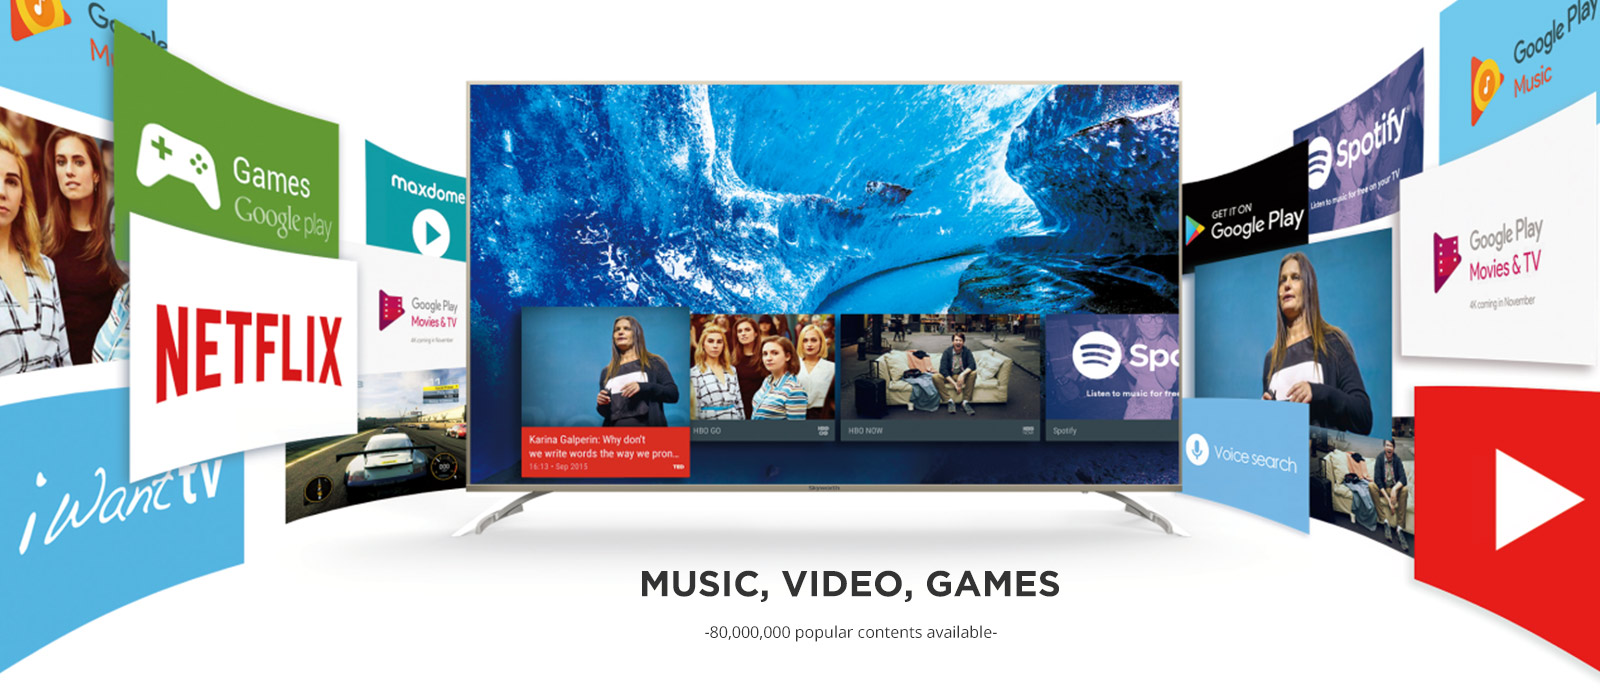 4k G2 Series - Android TV - Skyworth Group